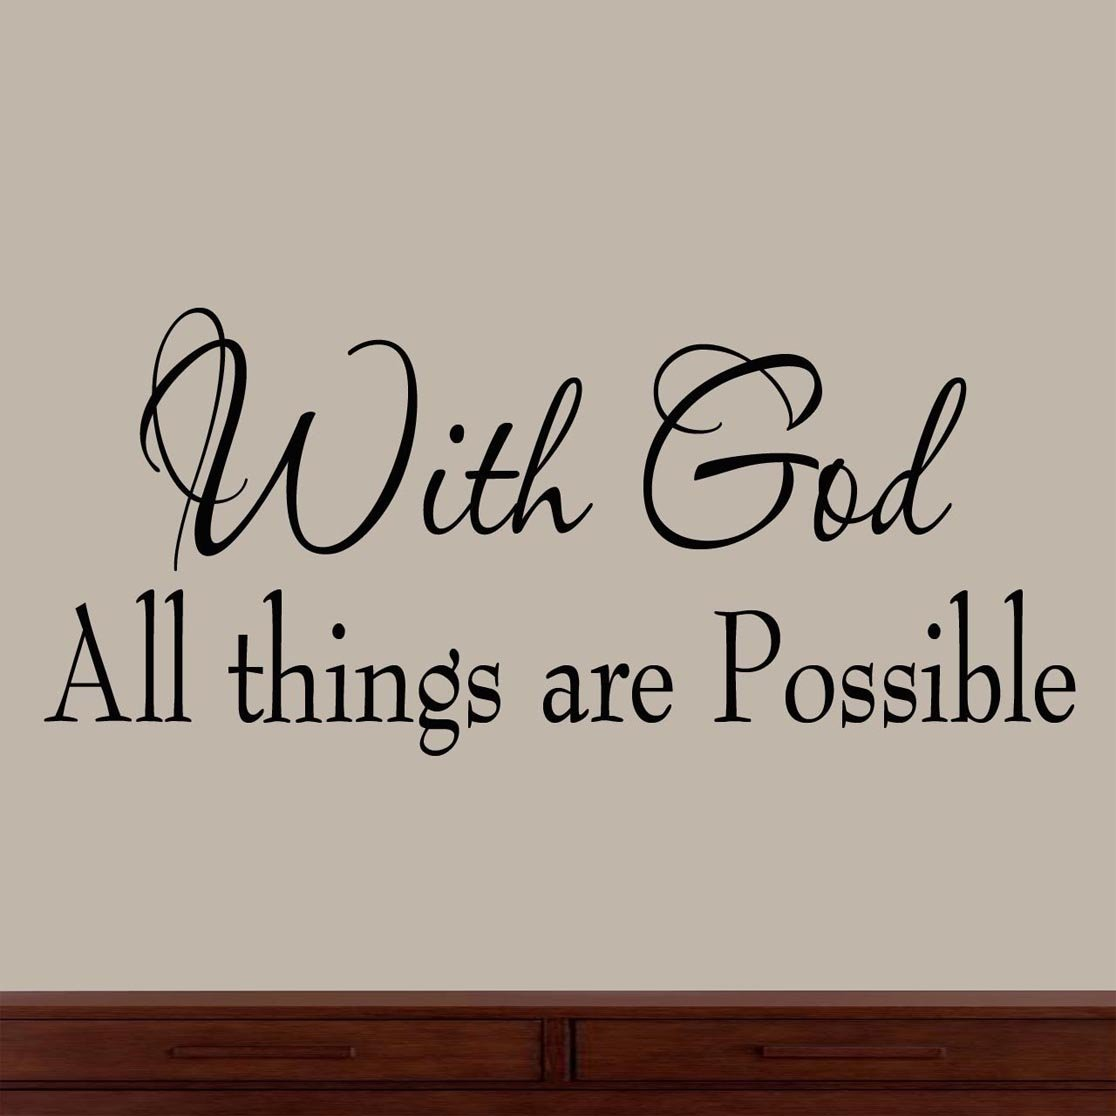 Amazoncom With God All Things Are Possible Faith Wall Decals - Wall decals christian